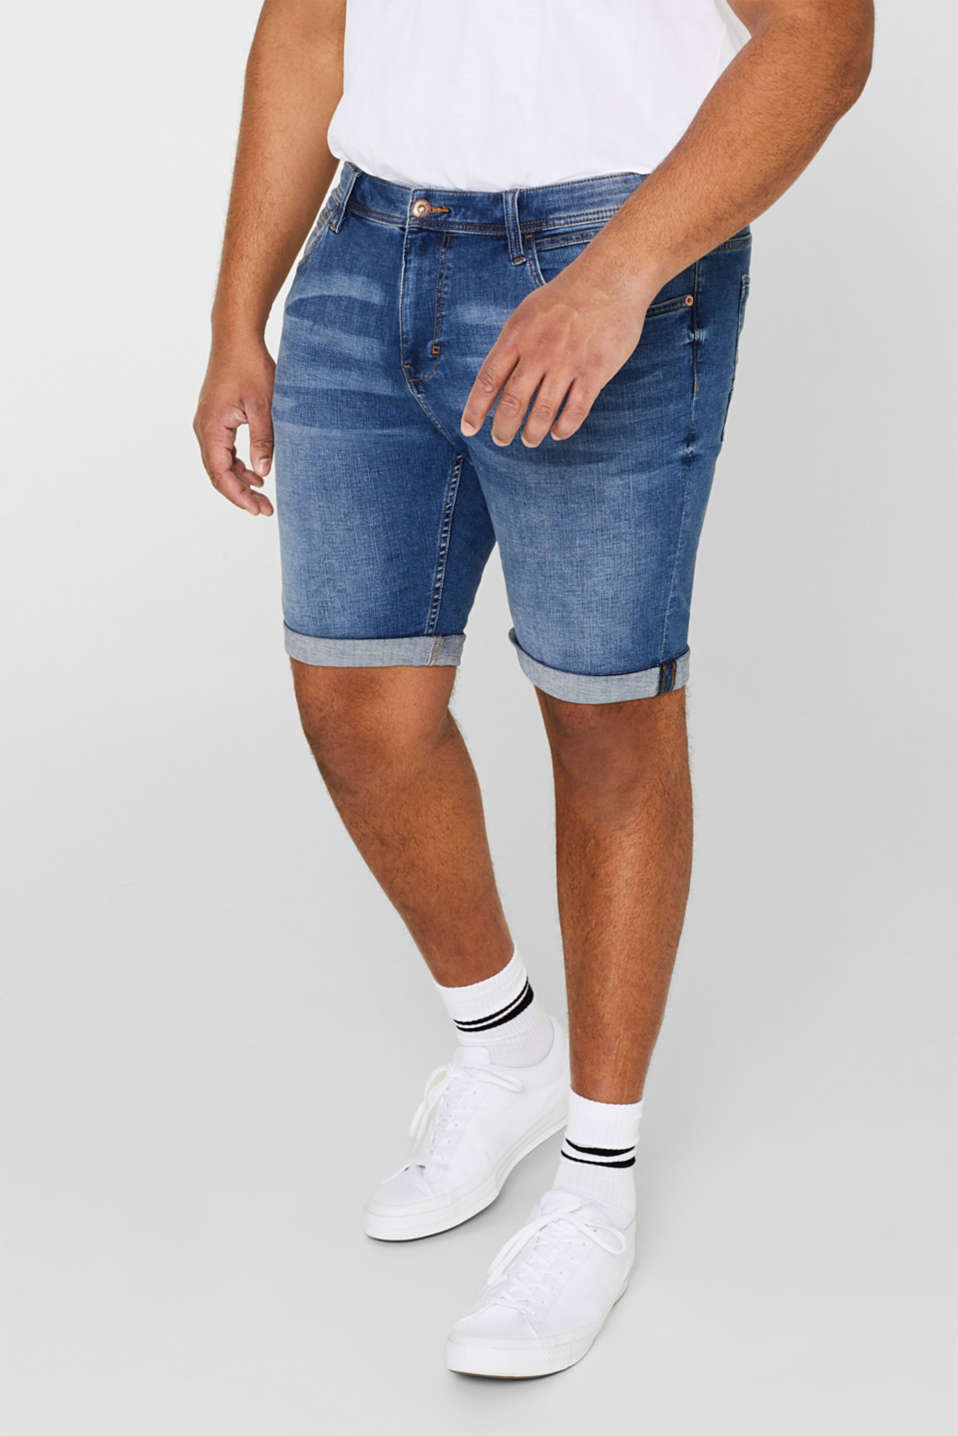 Esprit - Super stretchy denim shorts with a washed-out finish